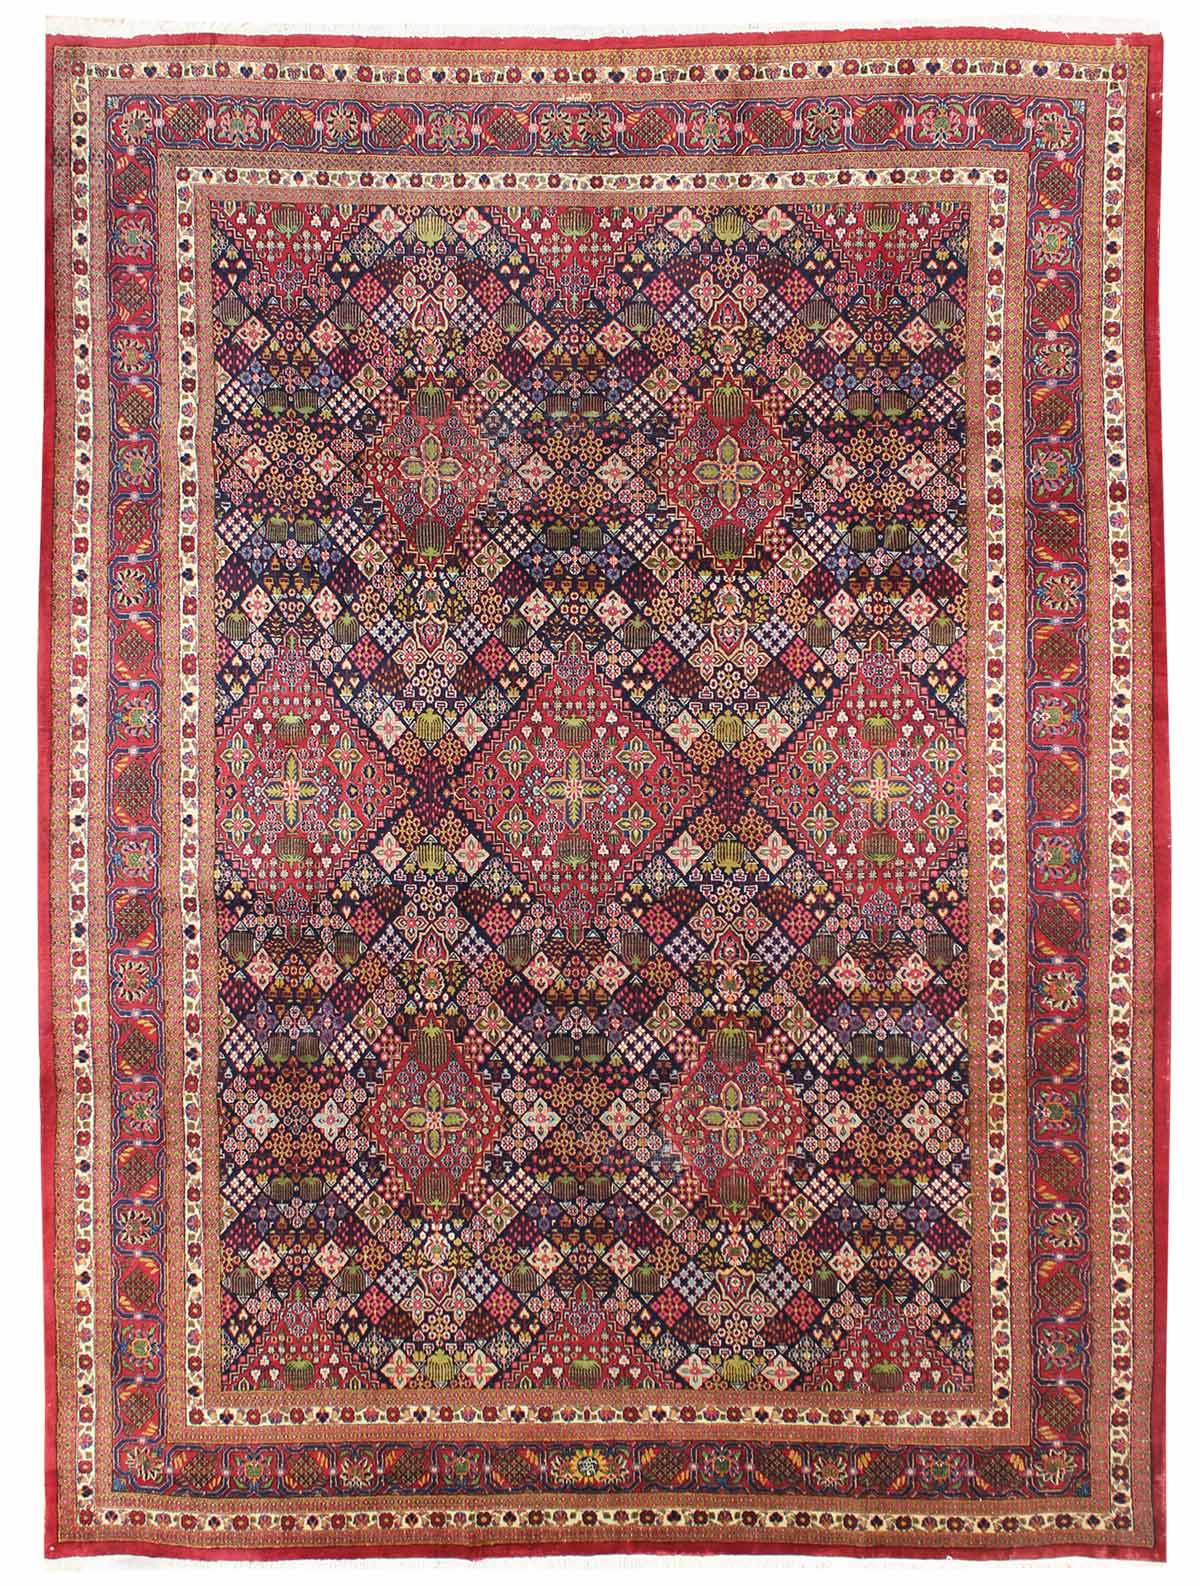 Antique Khorasan Handwoven Traditional Rug